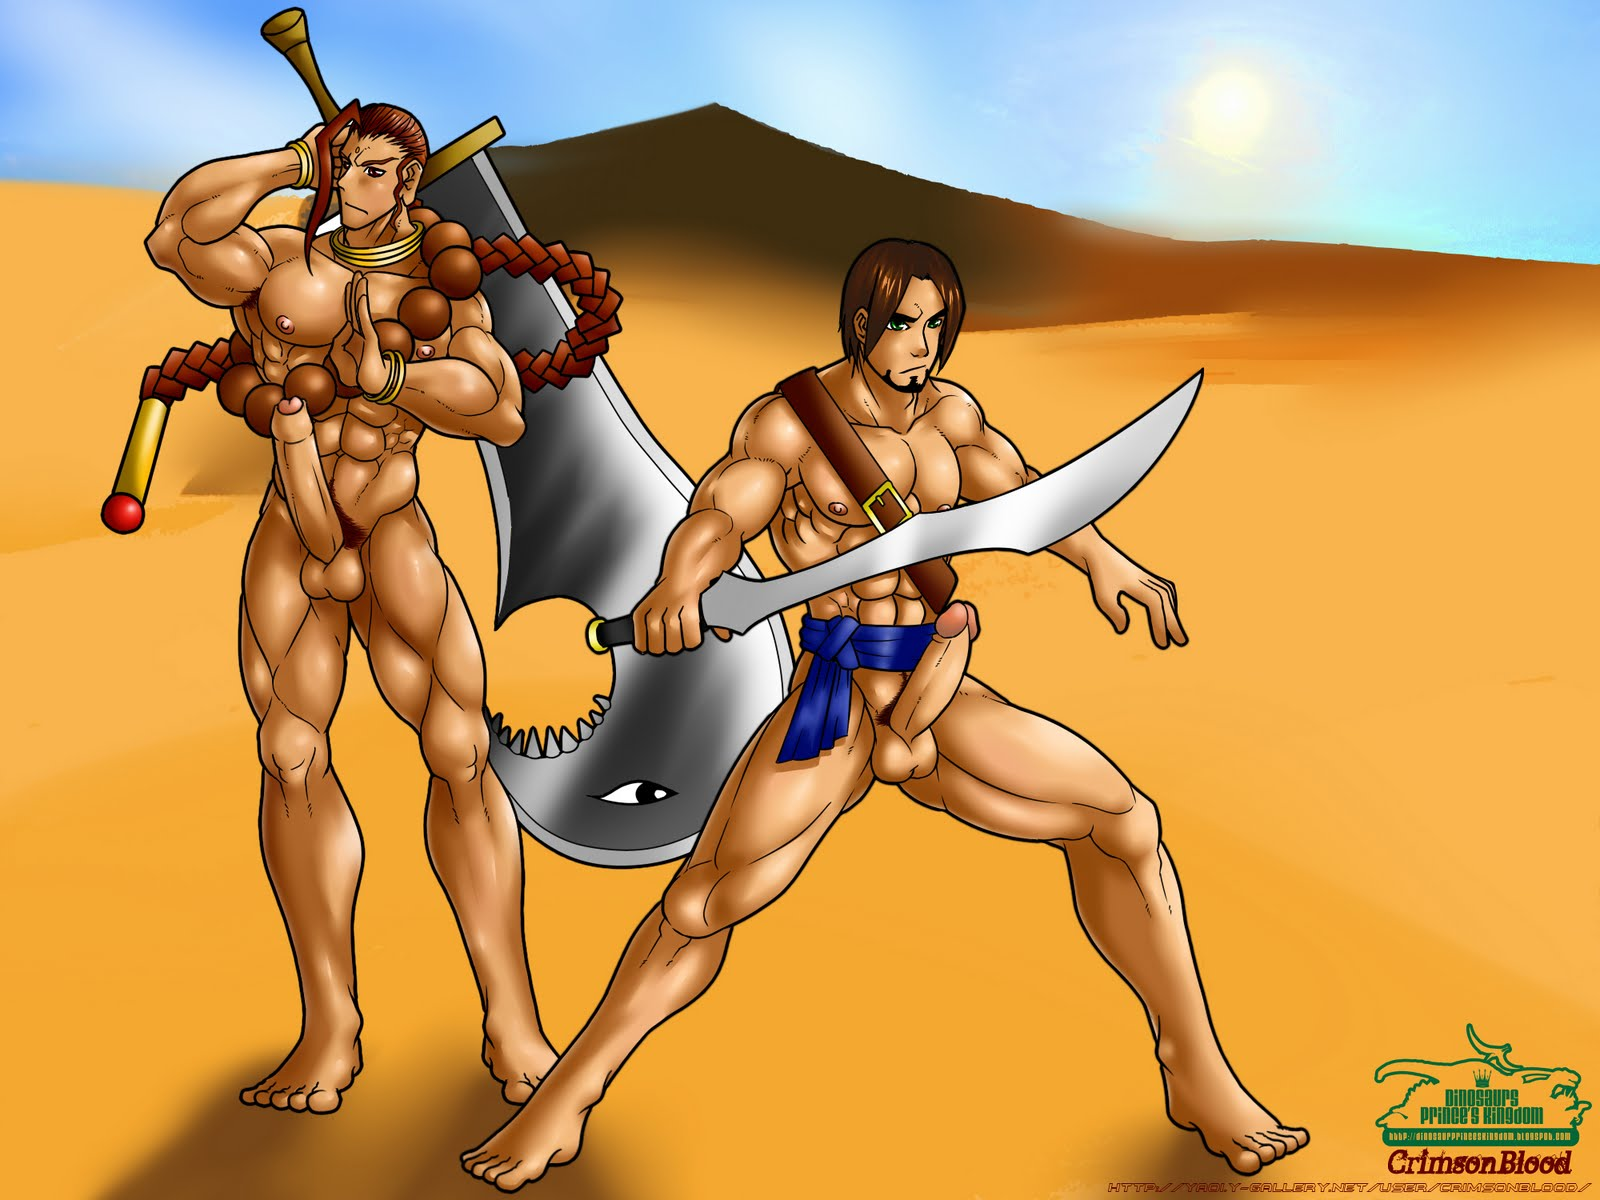 Prince of persia adult photos cartoons hardcore clips